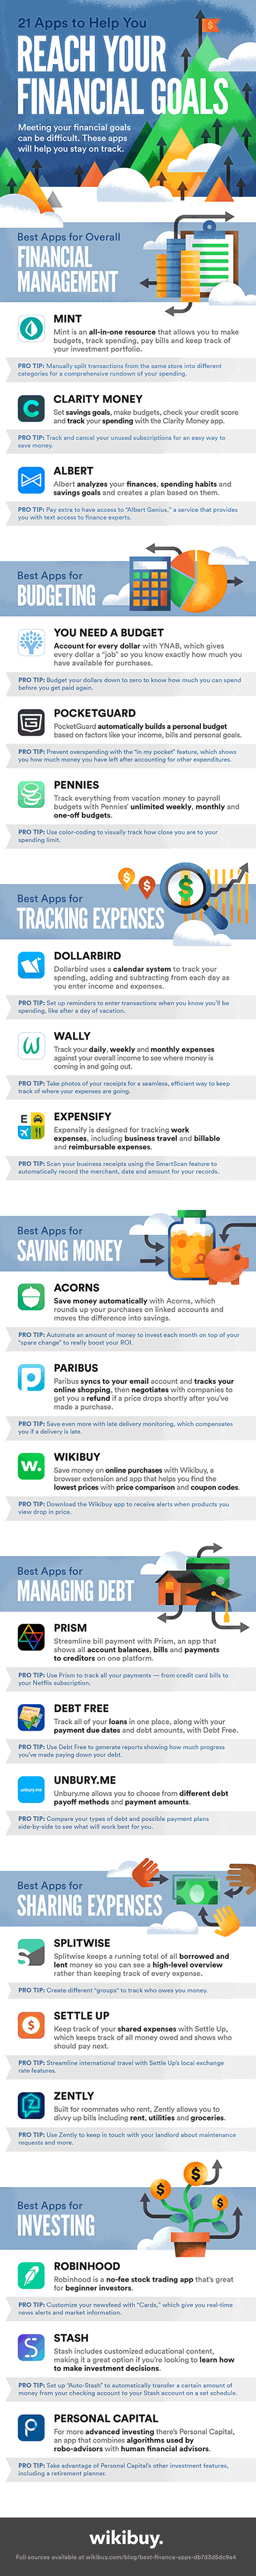 mobile apps to track and manage finances